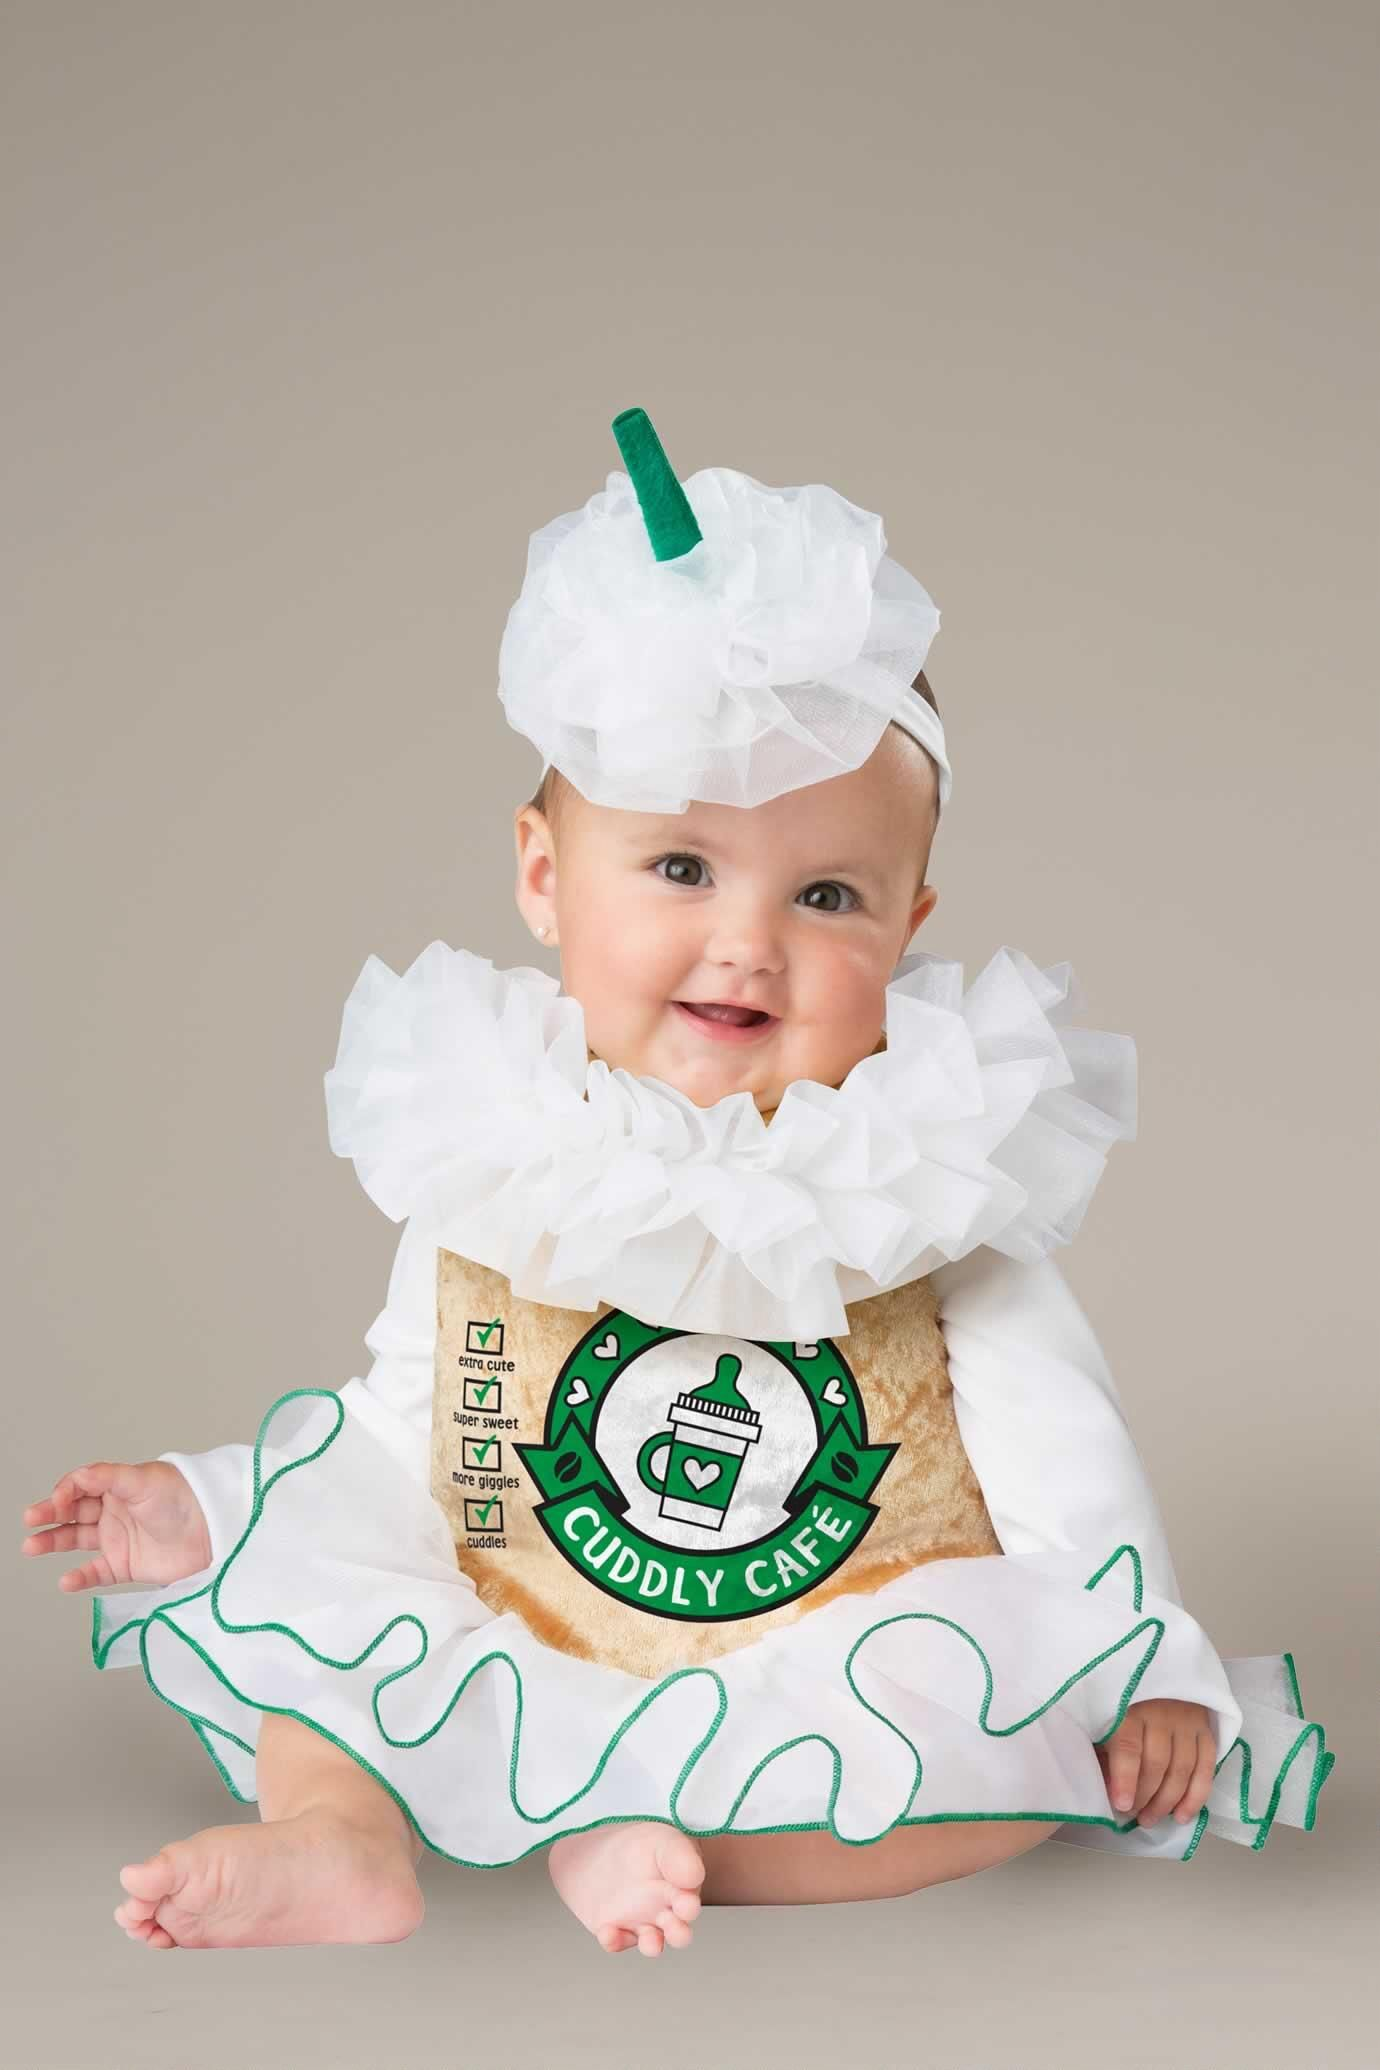 b03c0e9a818 27 Cute Baby Halloween Costumes 2018 - Best Ideas for Boy   Girl Infant    Toddler Costumes